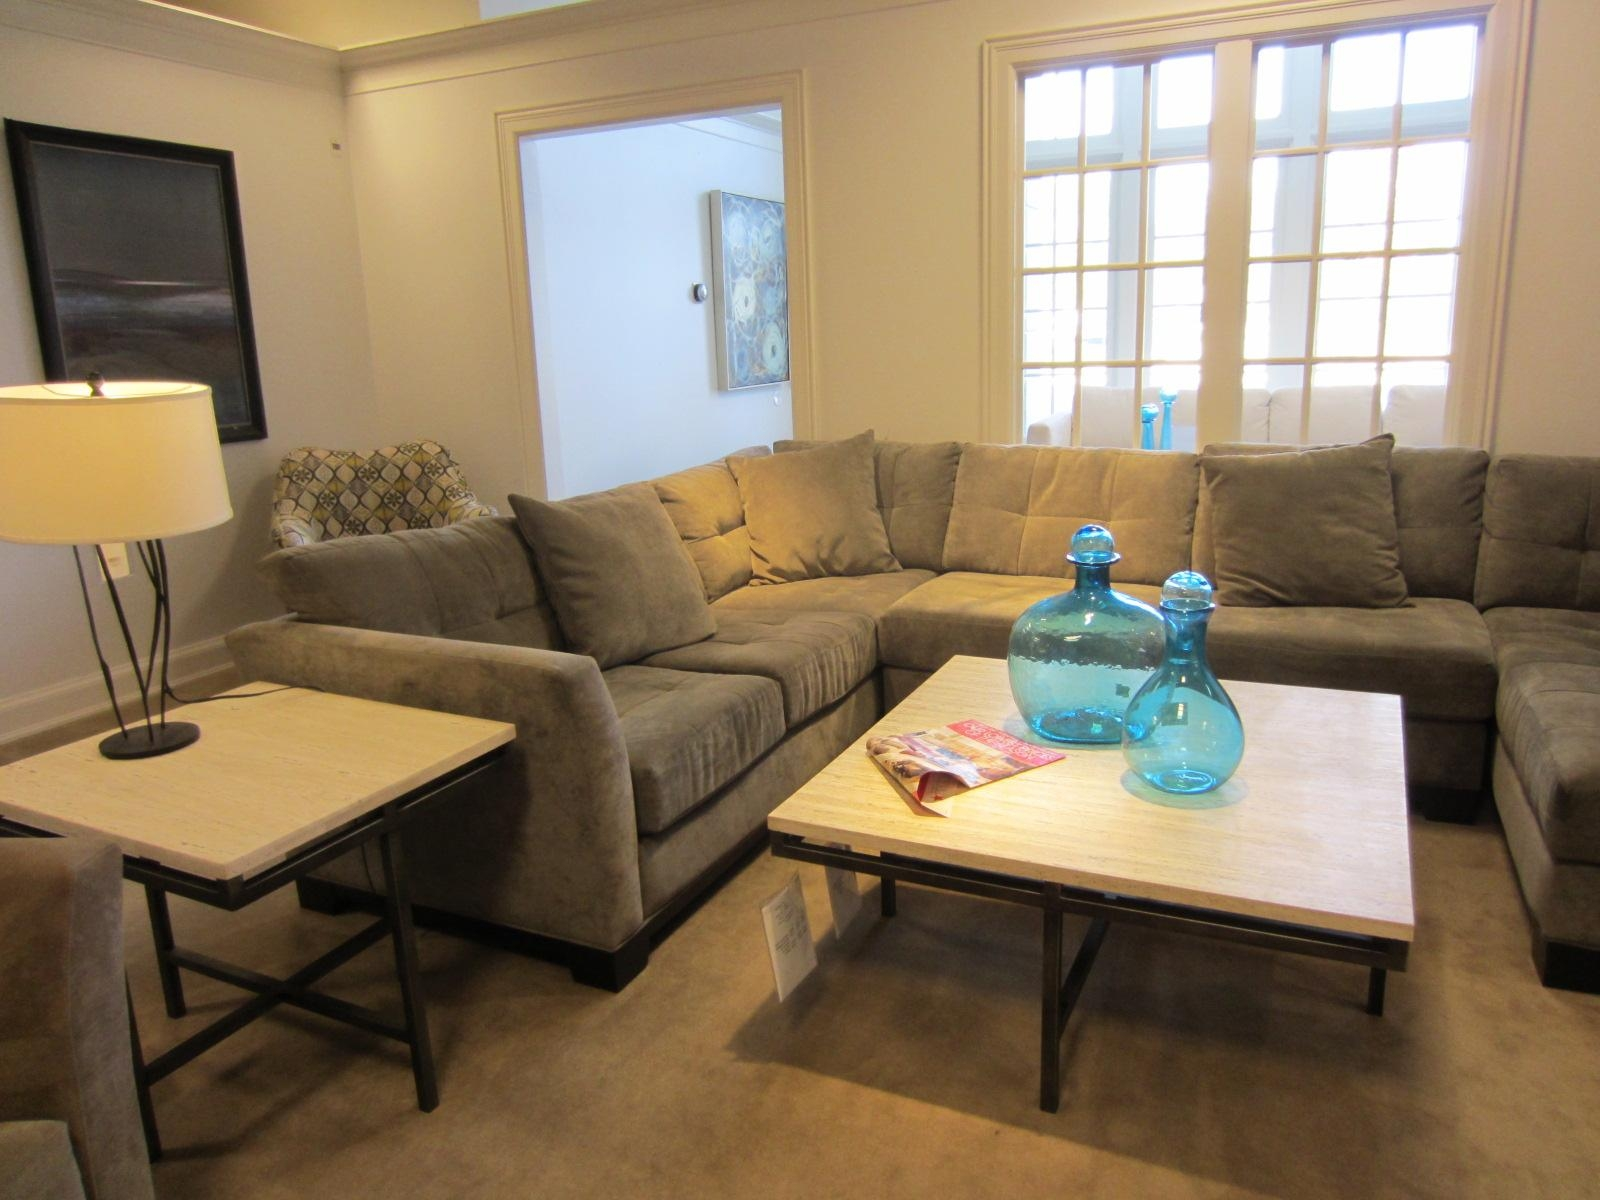 Apartment Furniture – We Found Our Couch! | The Splendid Guide | A Inside Macys Sectional (Image 3 of 20)